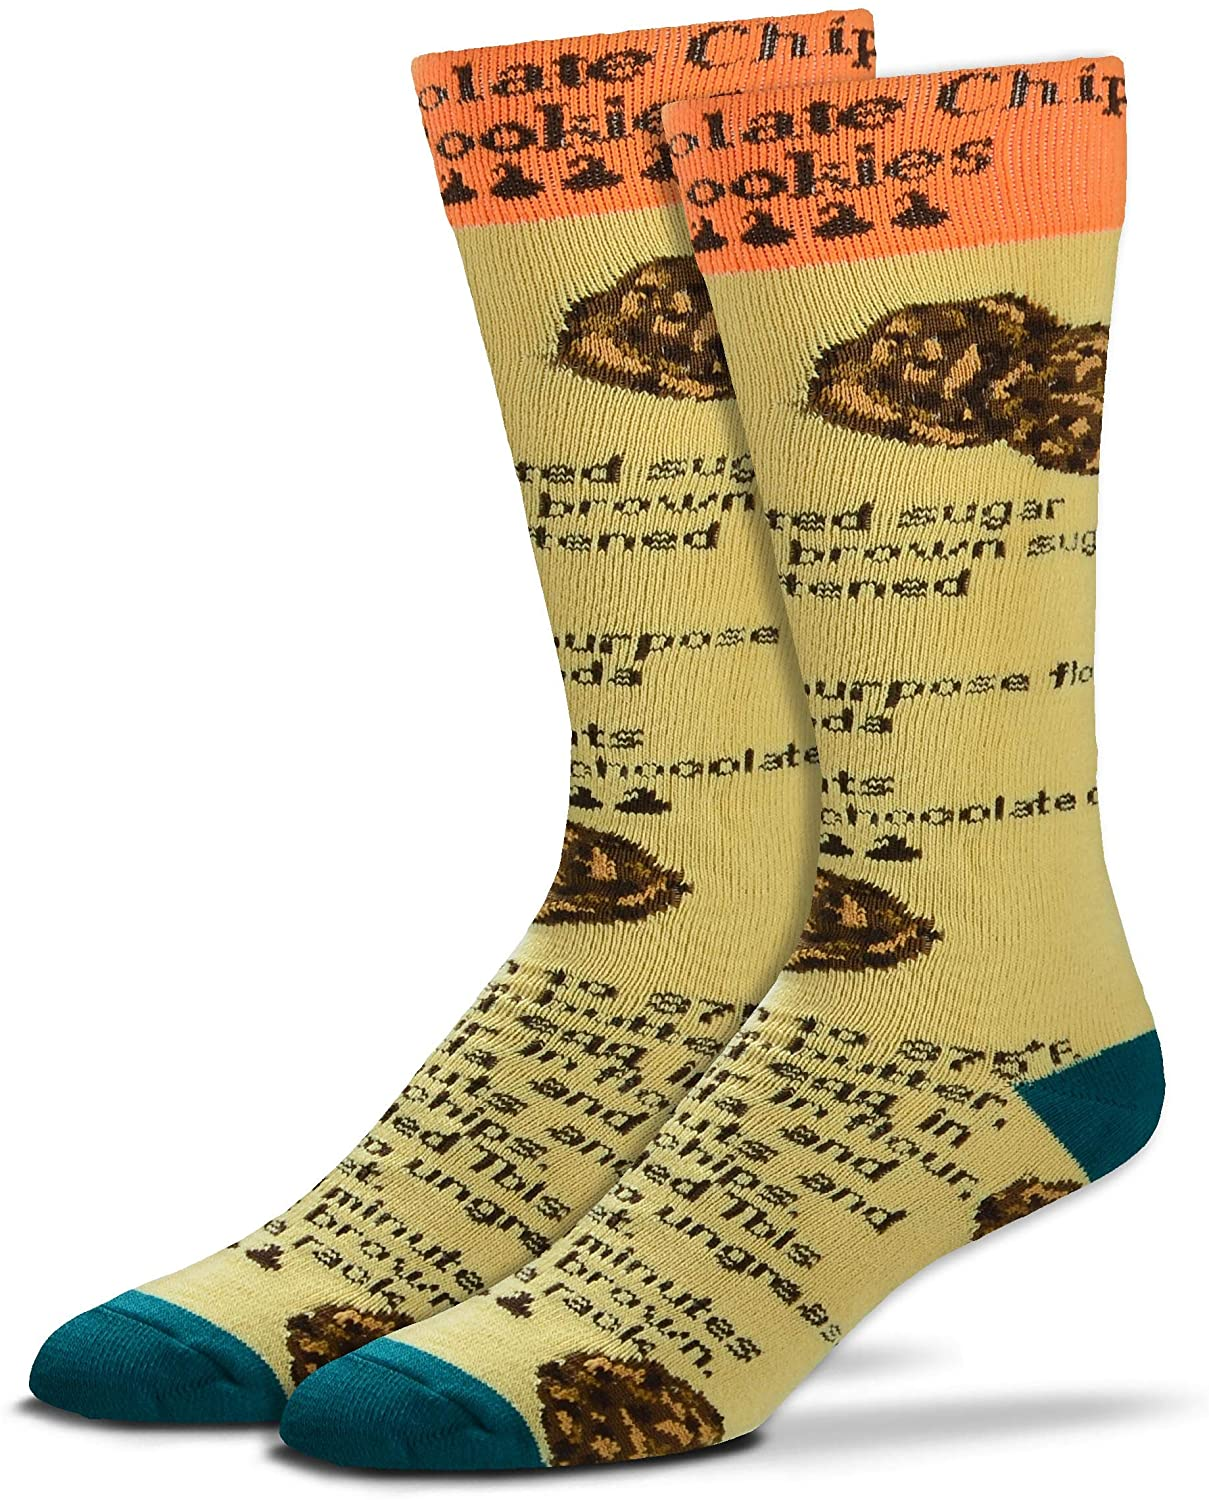 For Bare Feet-Smell My Feet-Mens & Womens Novelty Food Snacks Candy-Scented Socks- 1 Size Fits Most